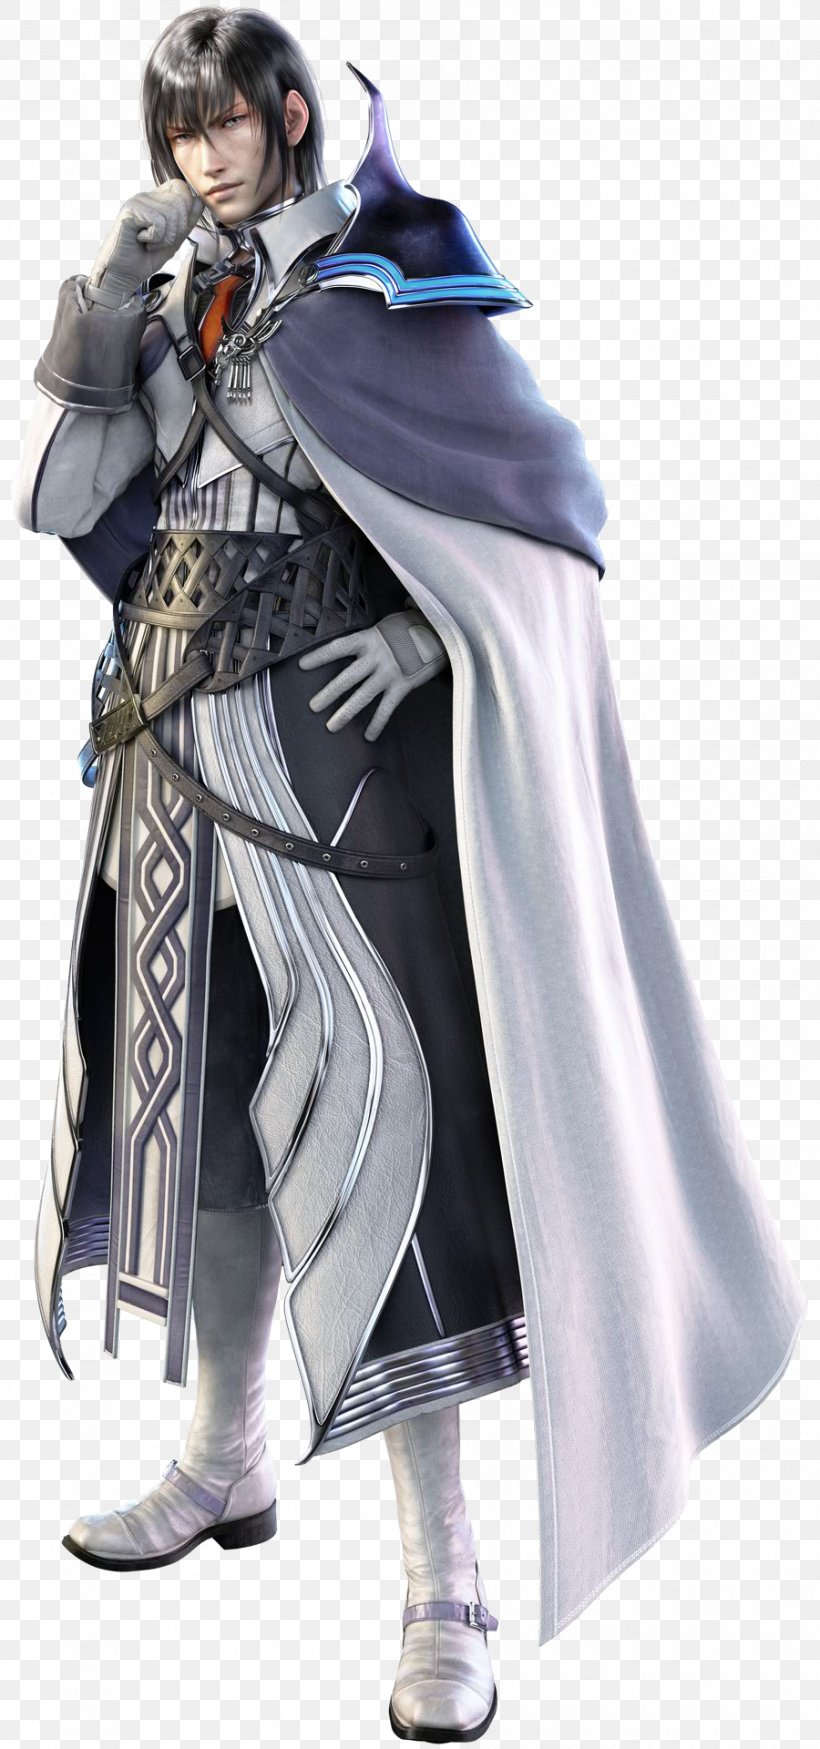 Lightning Returns: Final Fantasy XIII Final Fantasy XIII-2 Final Fantasy IX Final Fantasy VII, PNG, 900x1920px, Final Fantasy Xiii, Action Figure, Character, Cid, Concept Art Download Free